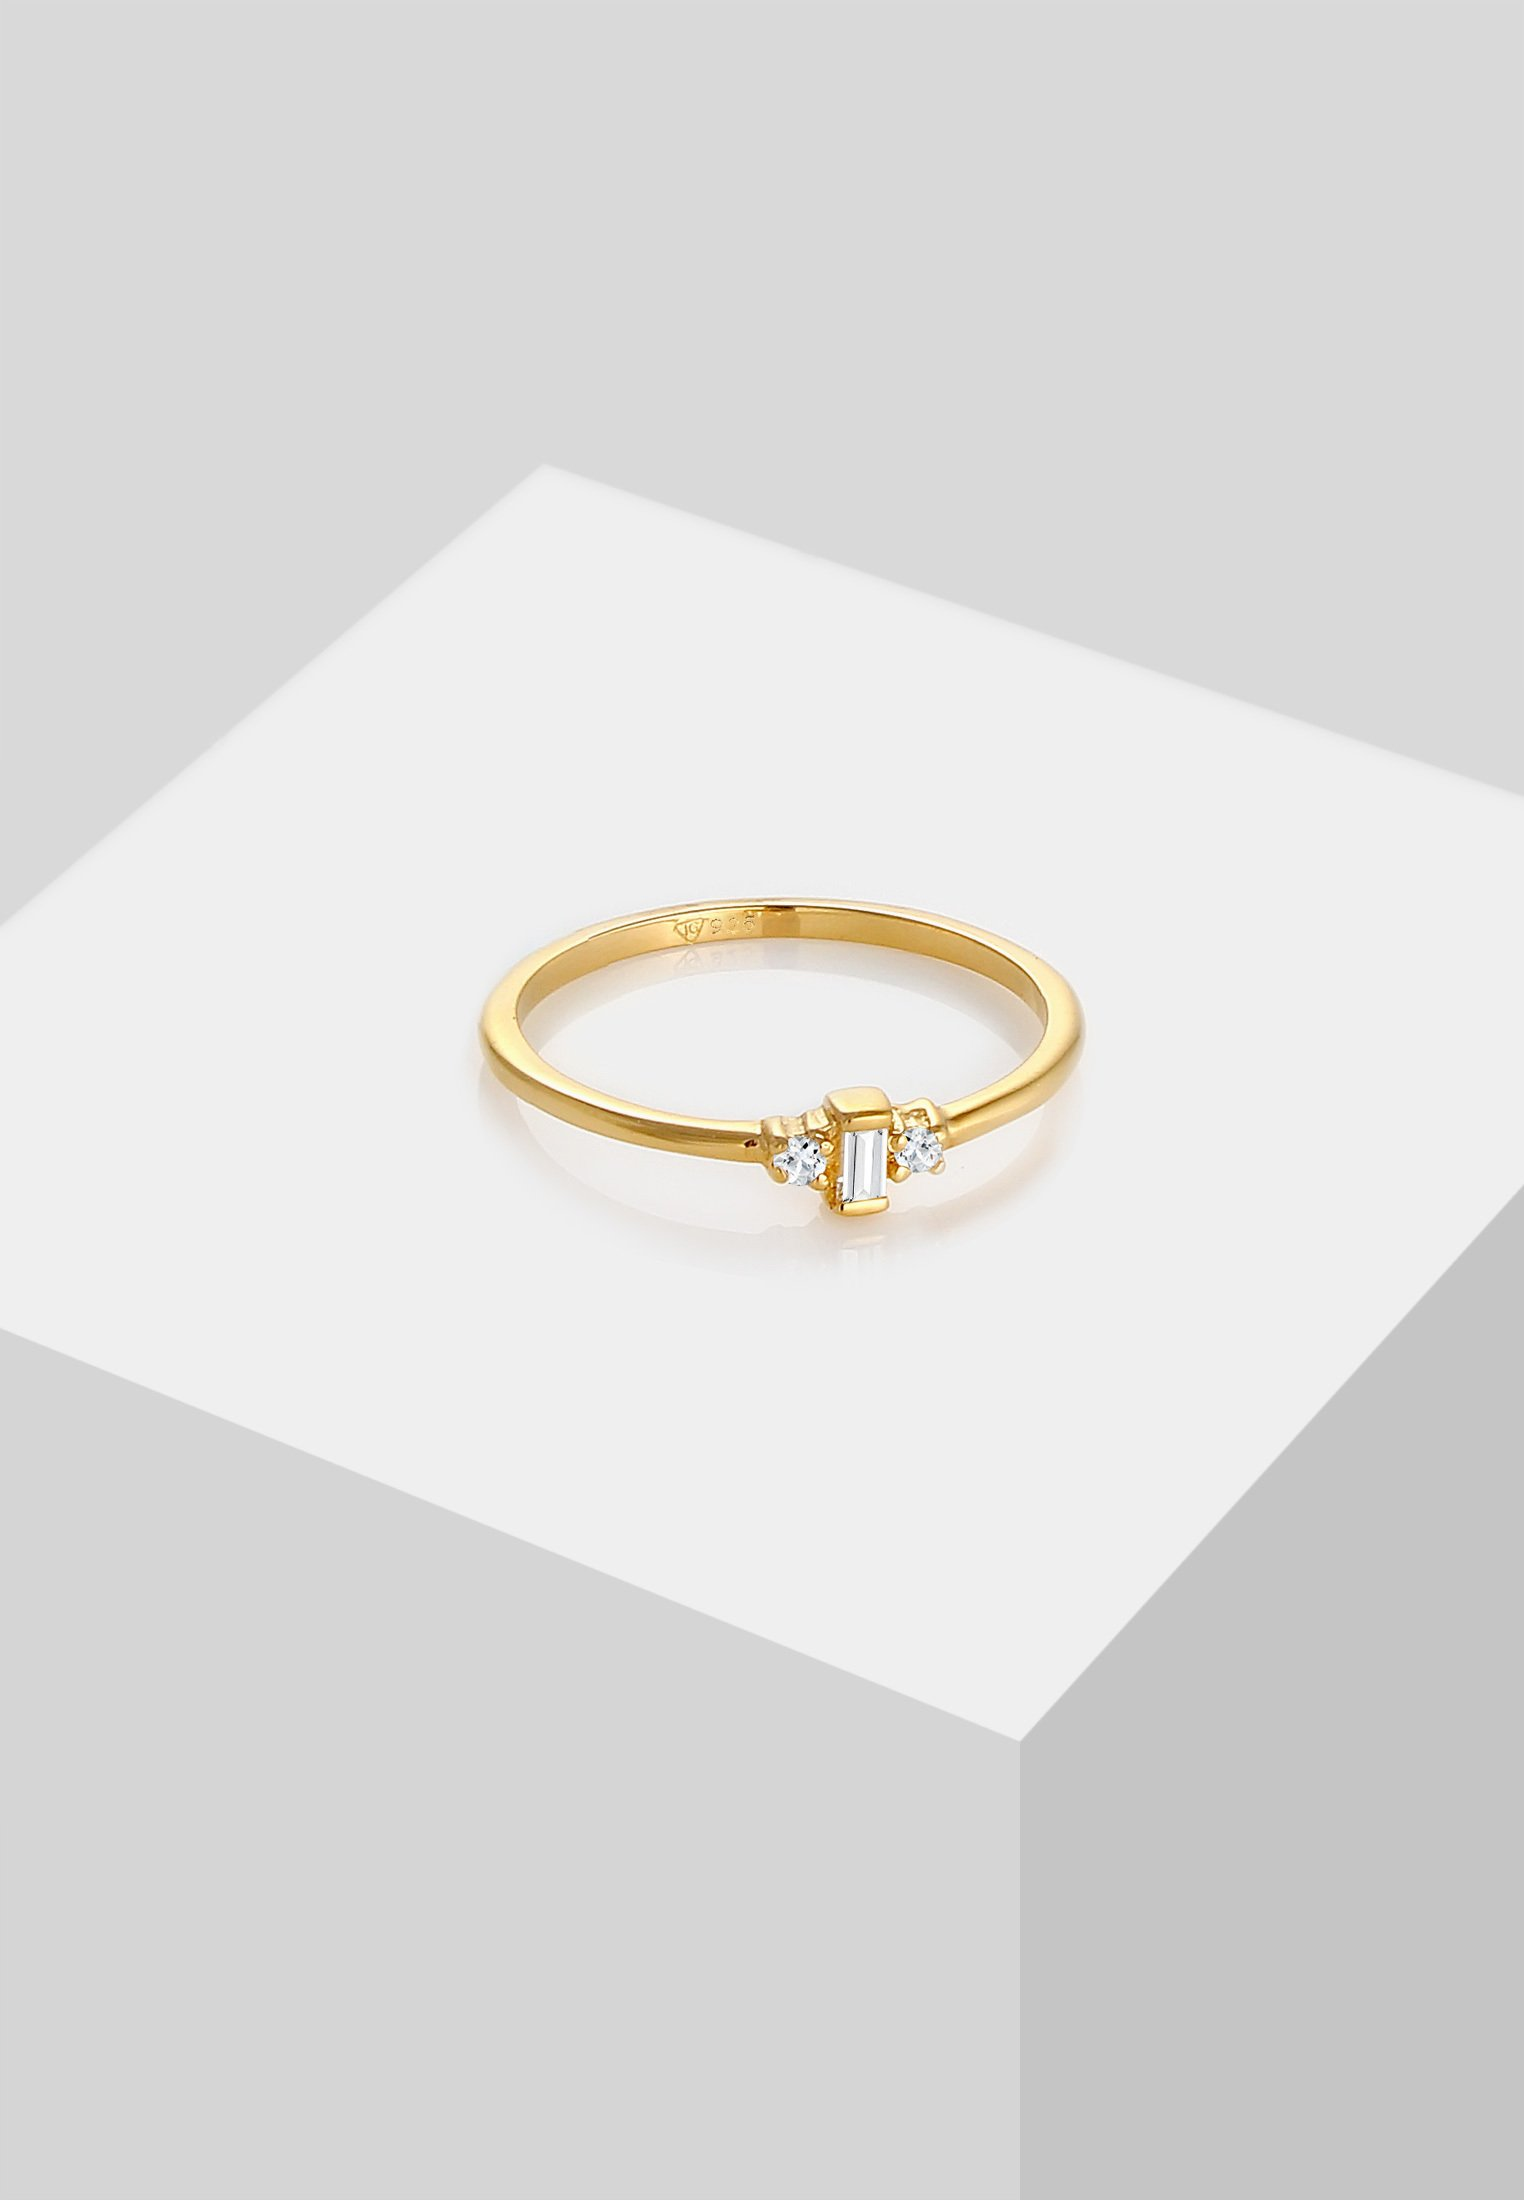 High Quality Cool Accessories Elli Ring gold lGY2Aapsl oRS4YQL2n